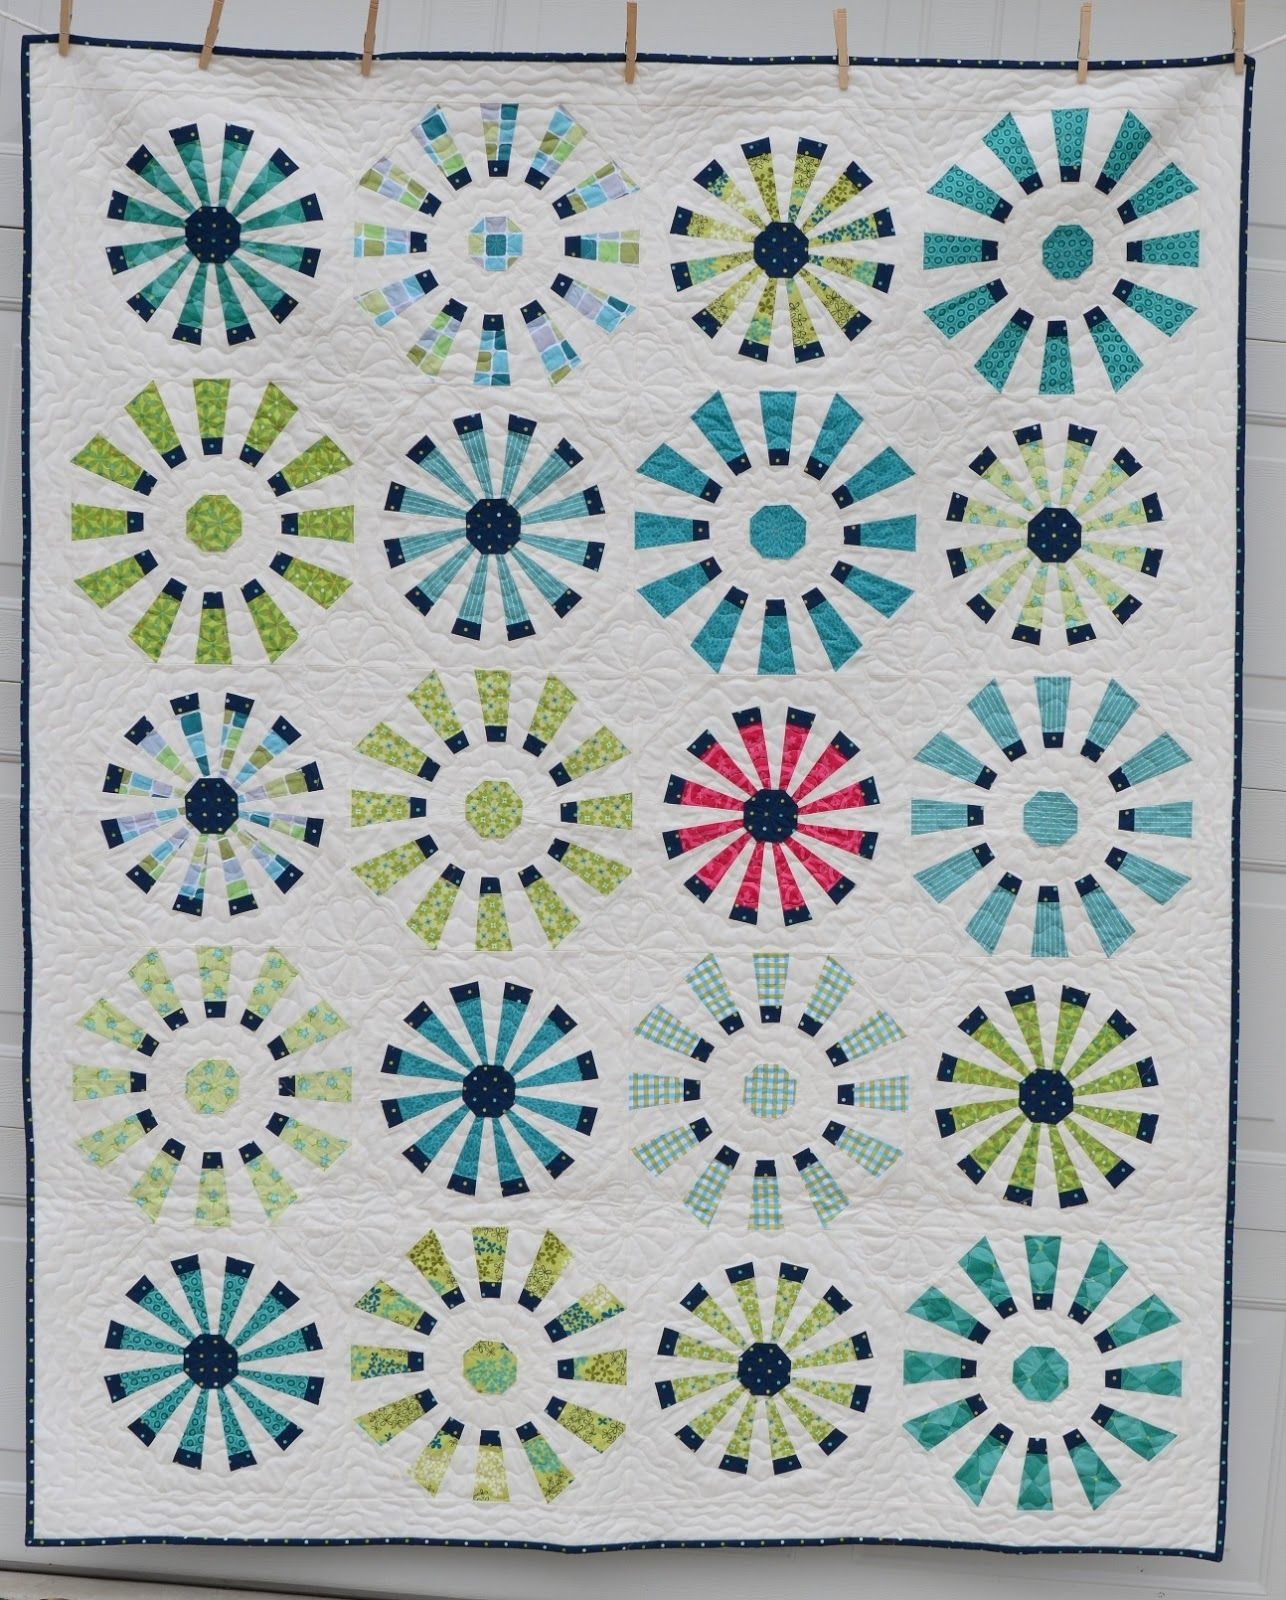 Dresden Fans - Hyacinth Quilt Designs - with link to tutorial ... : hyacinth quilt designs - Adamdwight.com